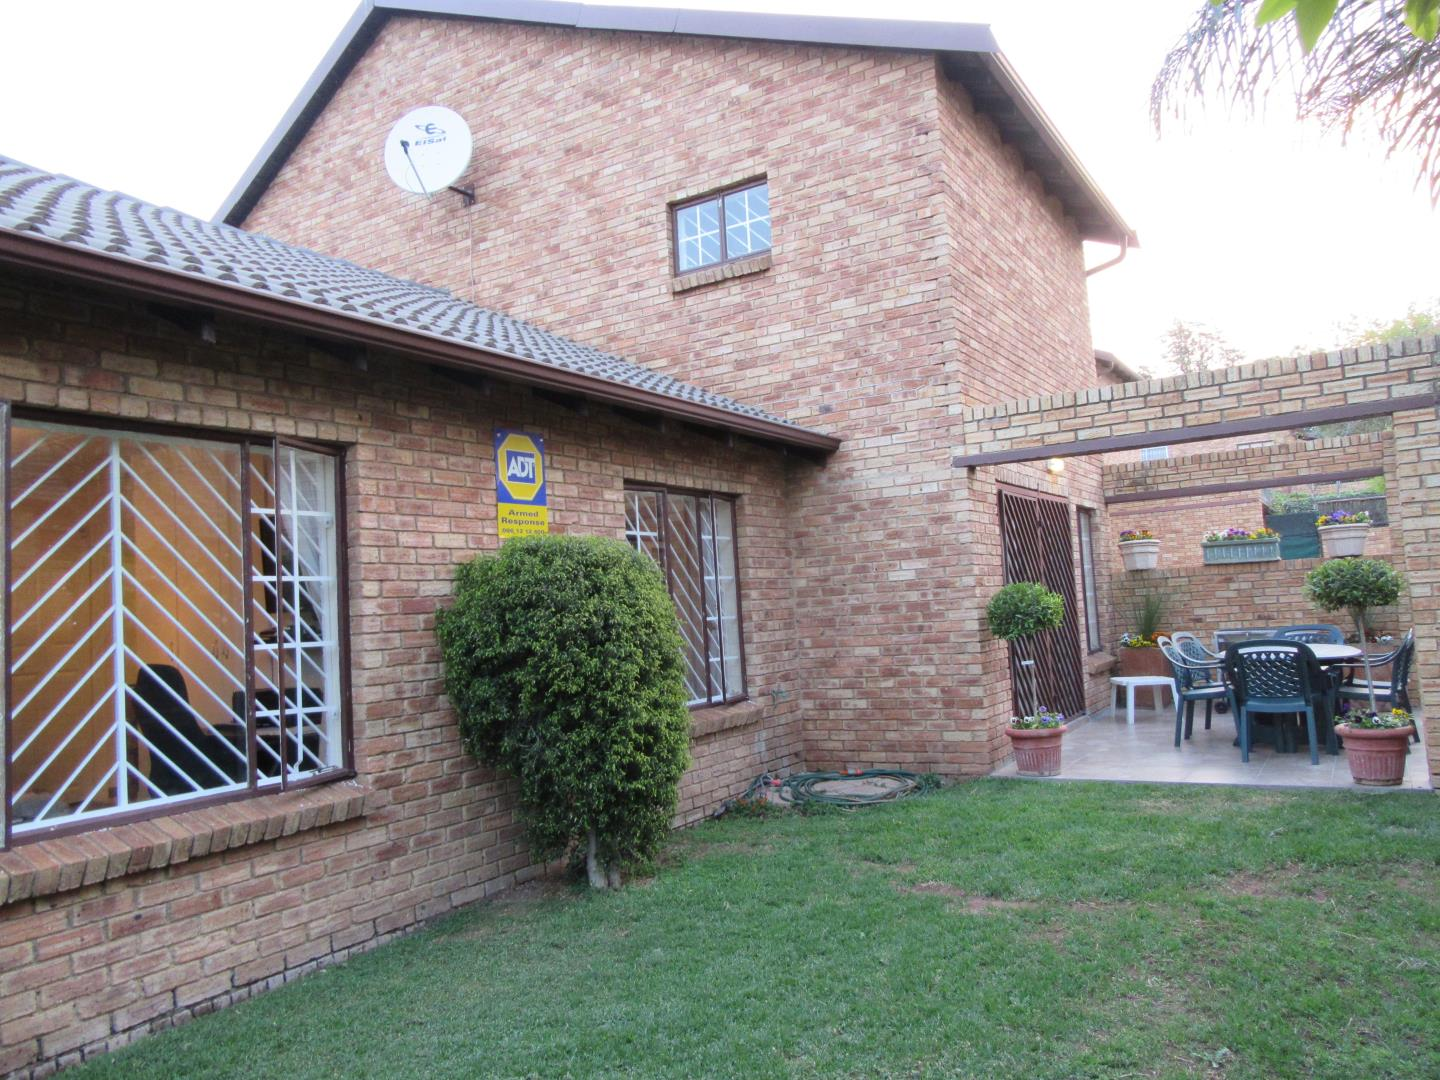 3 bedroom townhouse for sale in bromhof